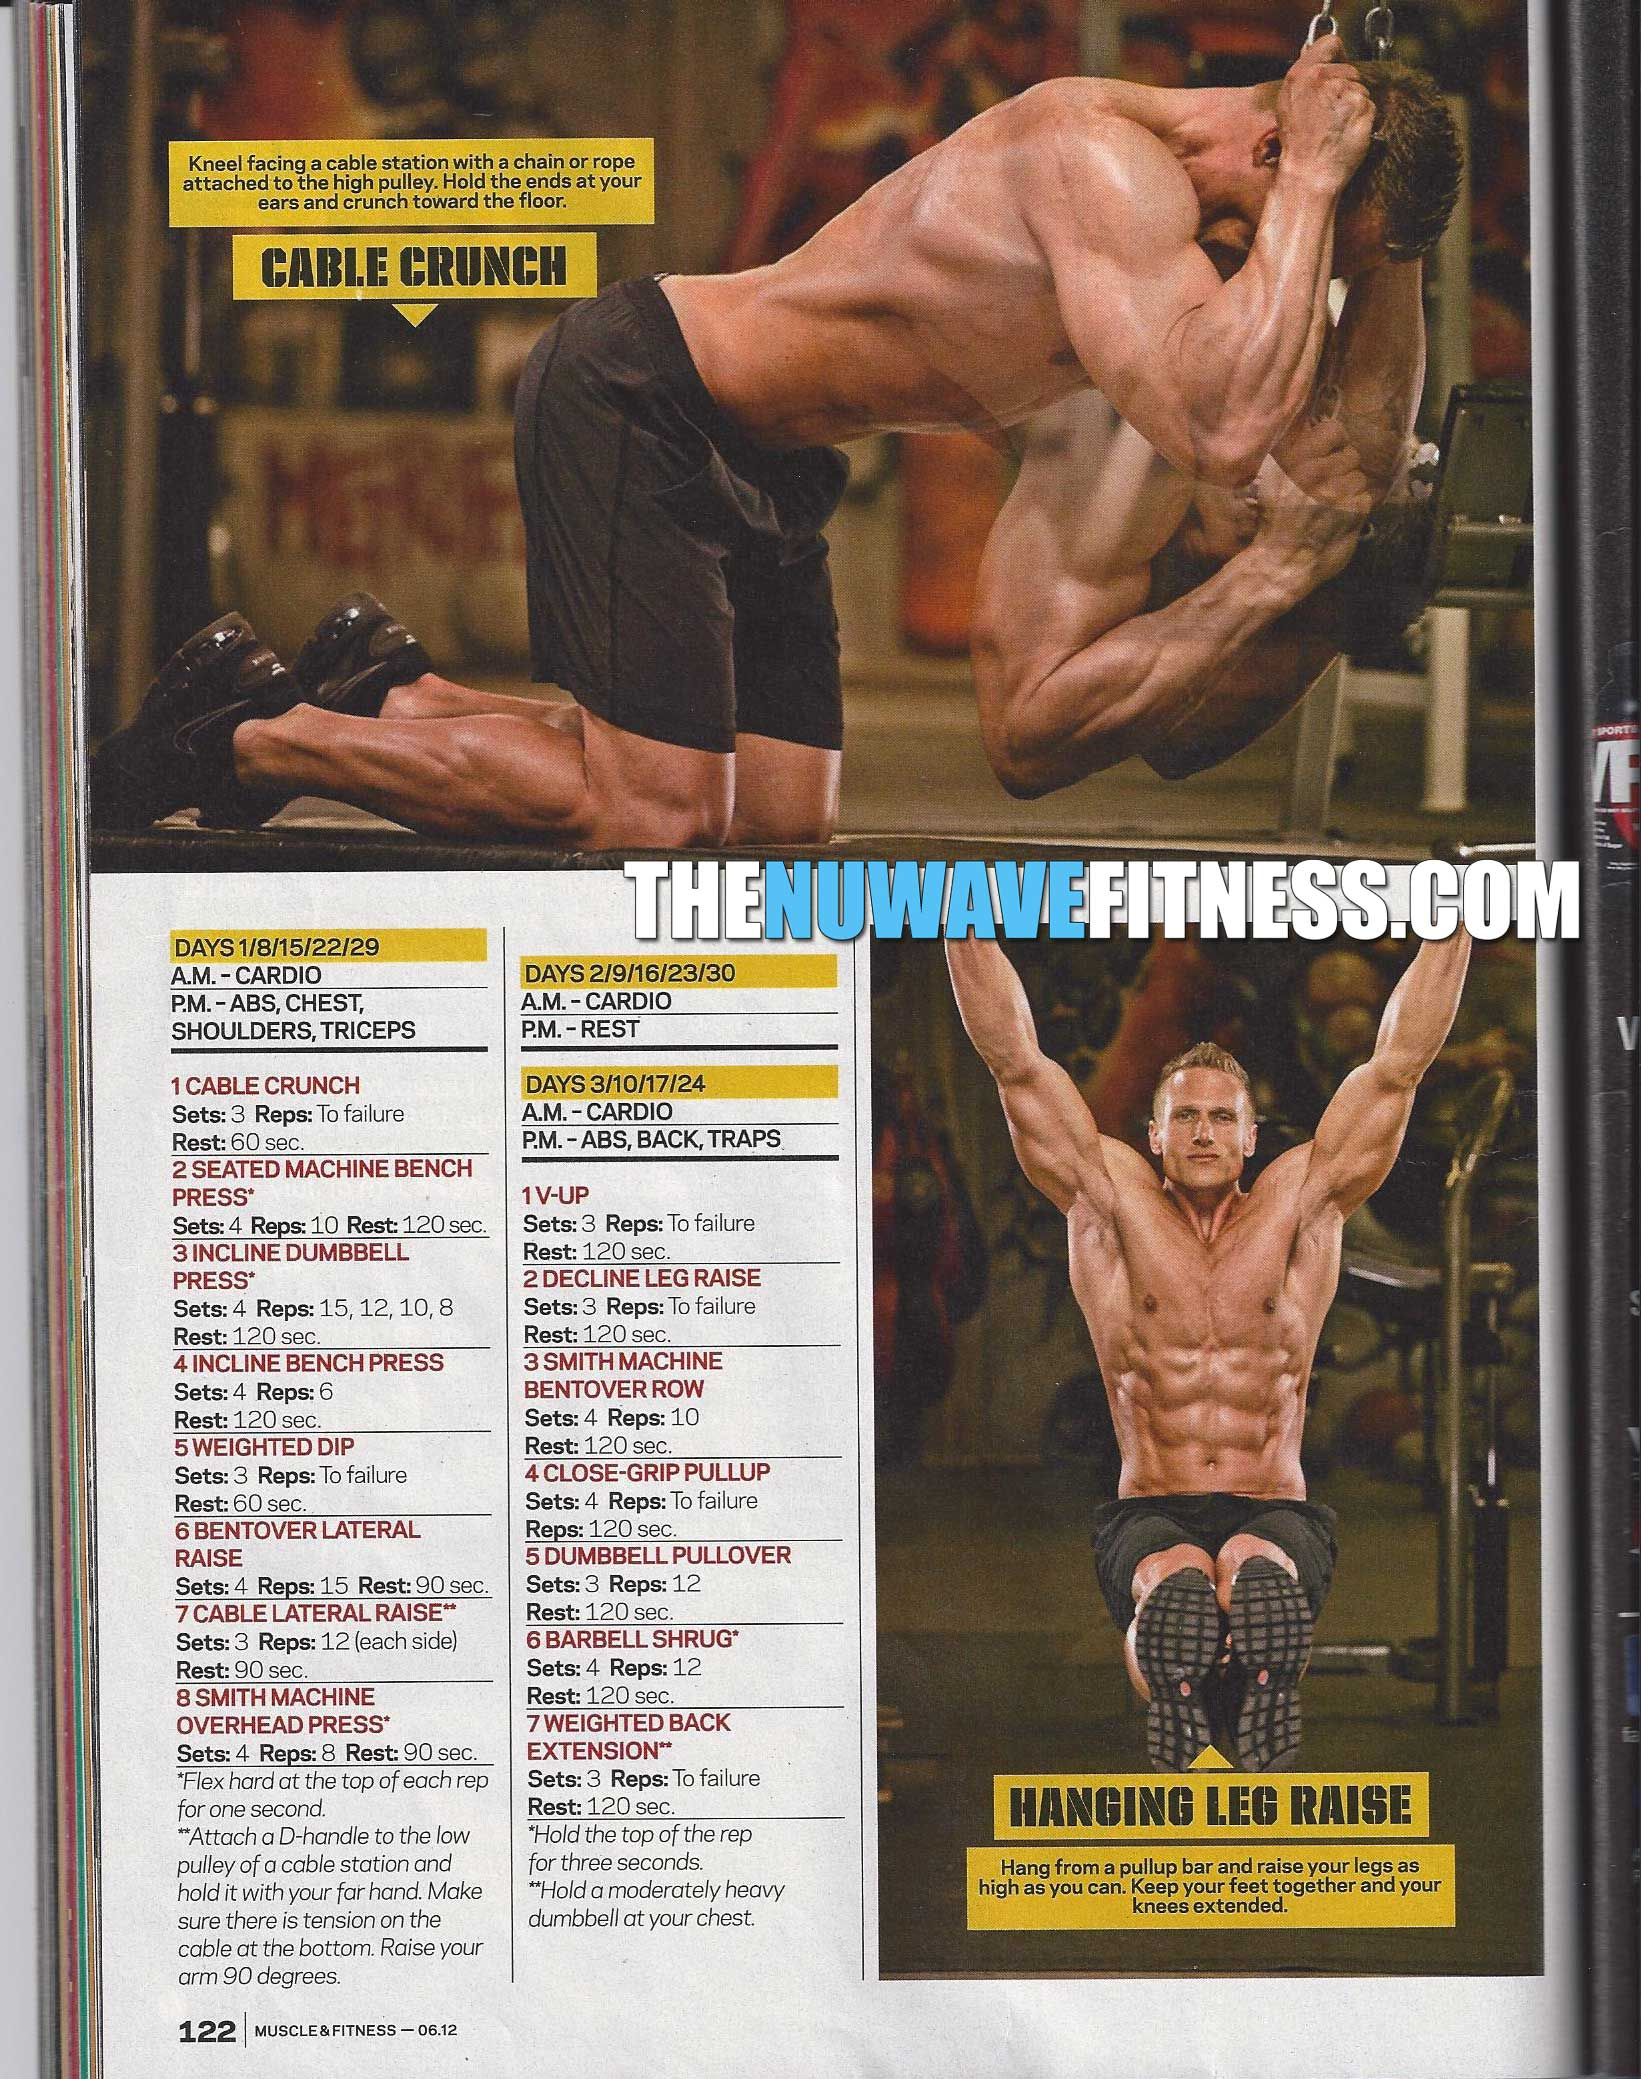 Ripped Abs In 30 Days Nuwave Fitness